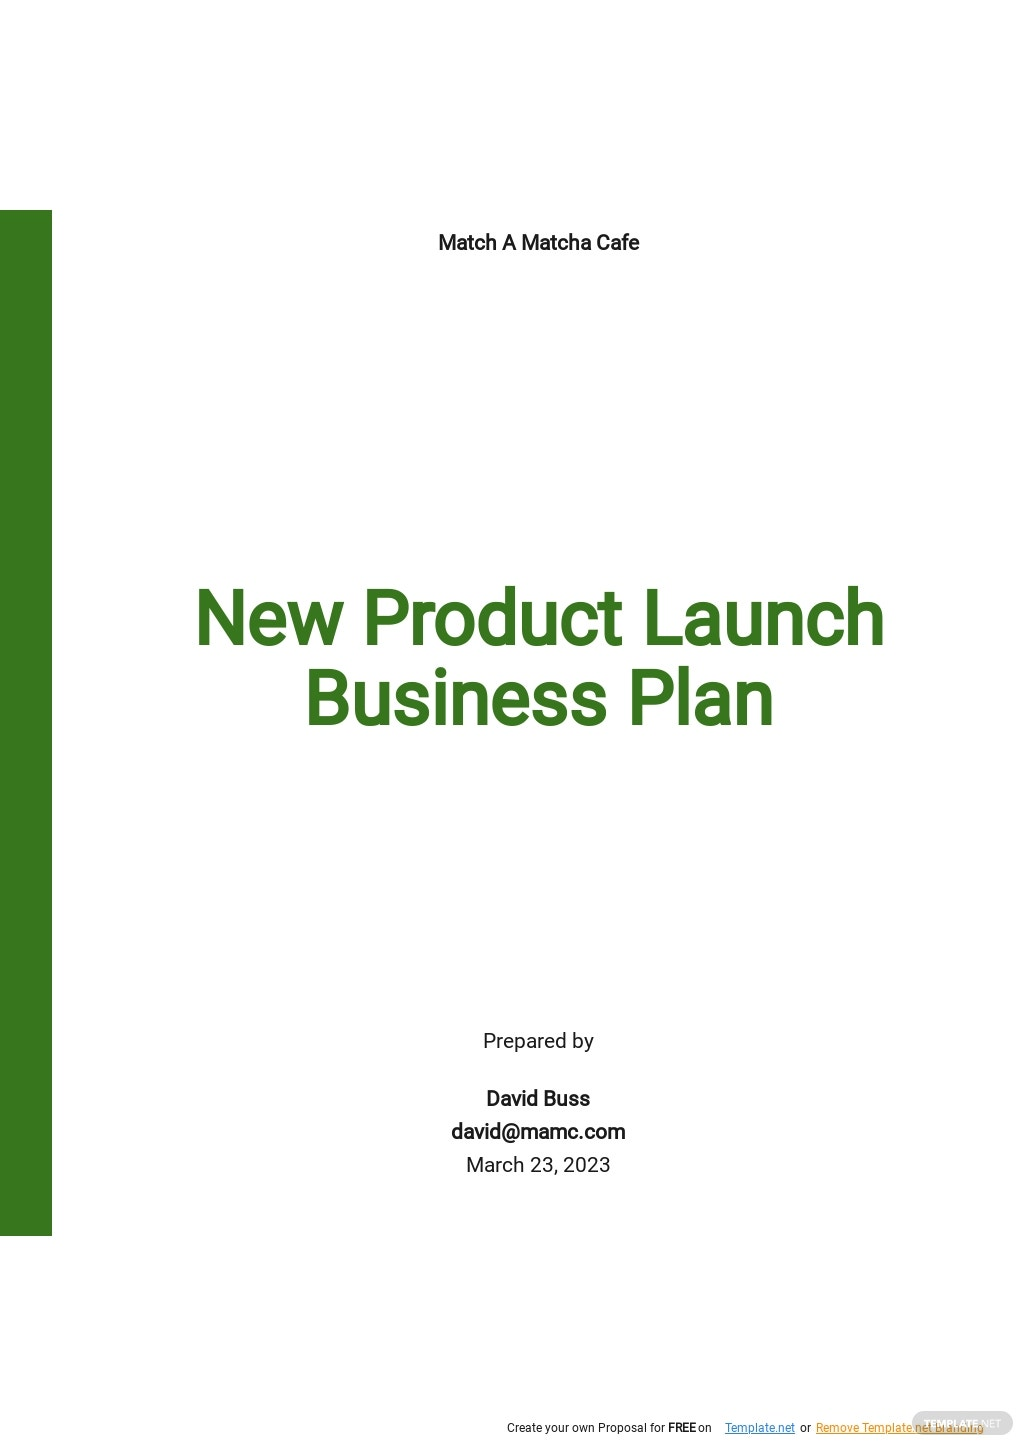 New Product Launch Business Plan Template.jpe